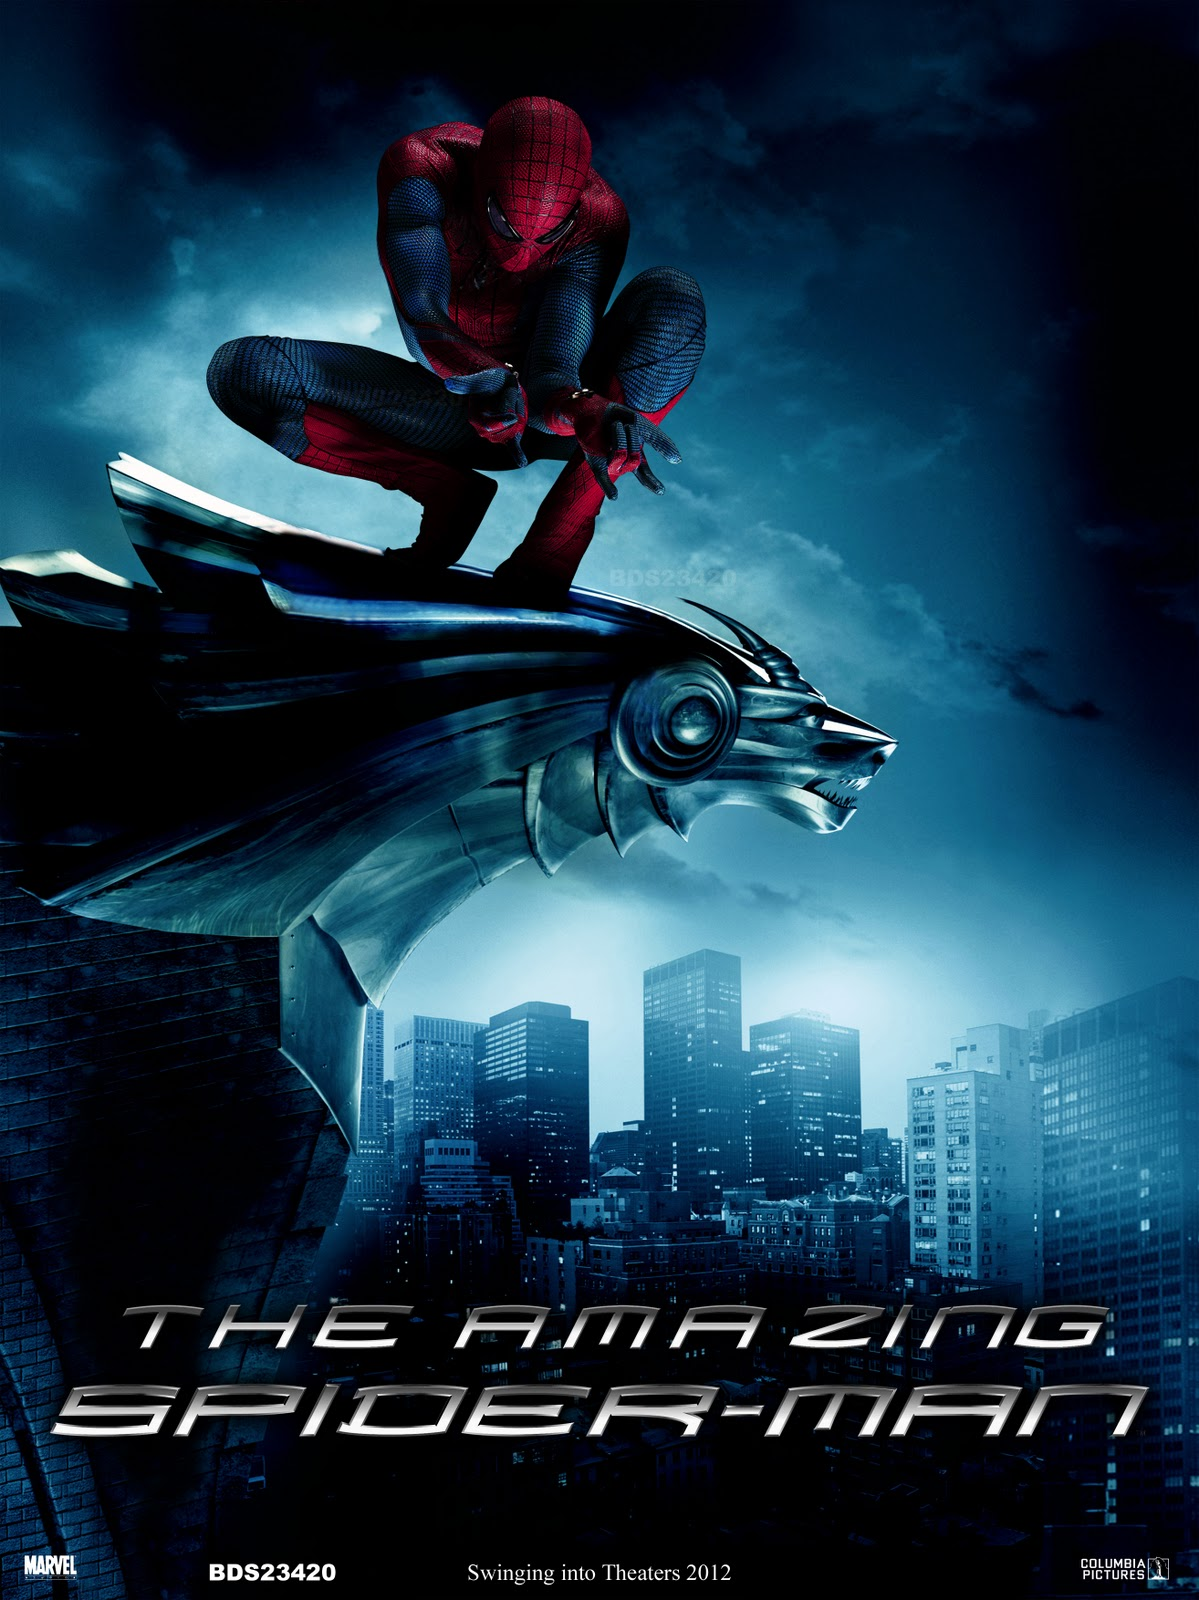 http://4.bp.blogspot.com/-U13KLLgMBbU/T_MzpCpjXDI/AAAAAAAADIk/ATHQUSD07po/s1600/The-Amazing-Spider-Man-2012-movie-wallpaper.jpg